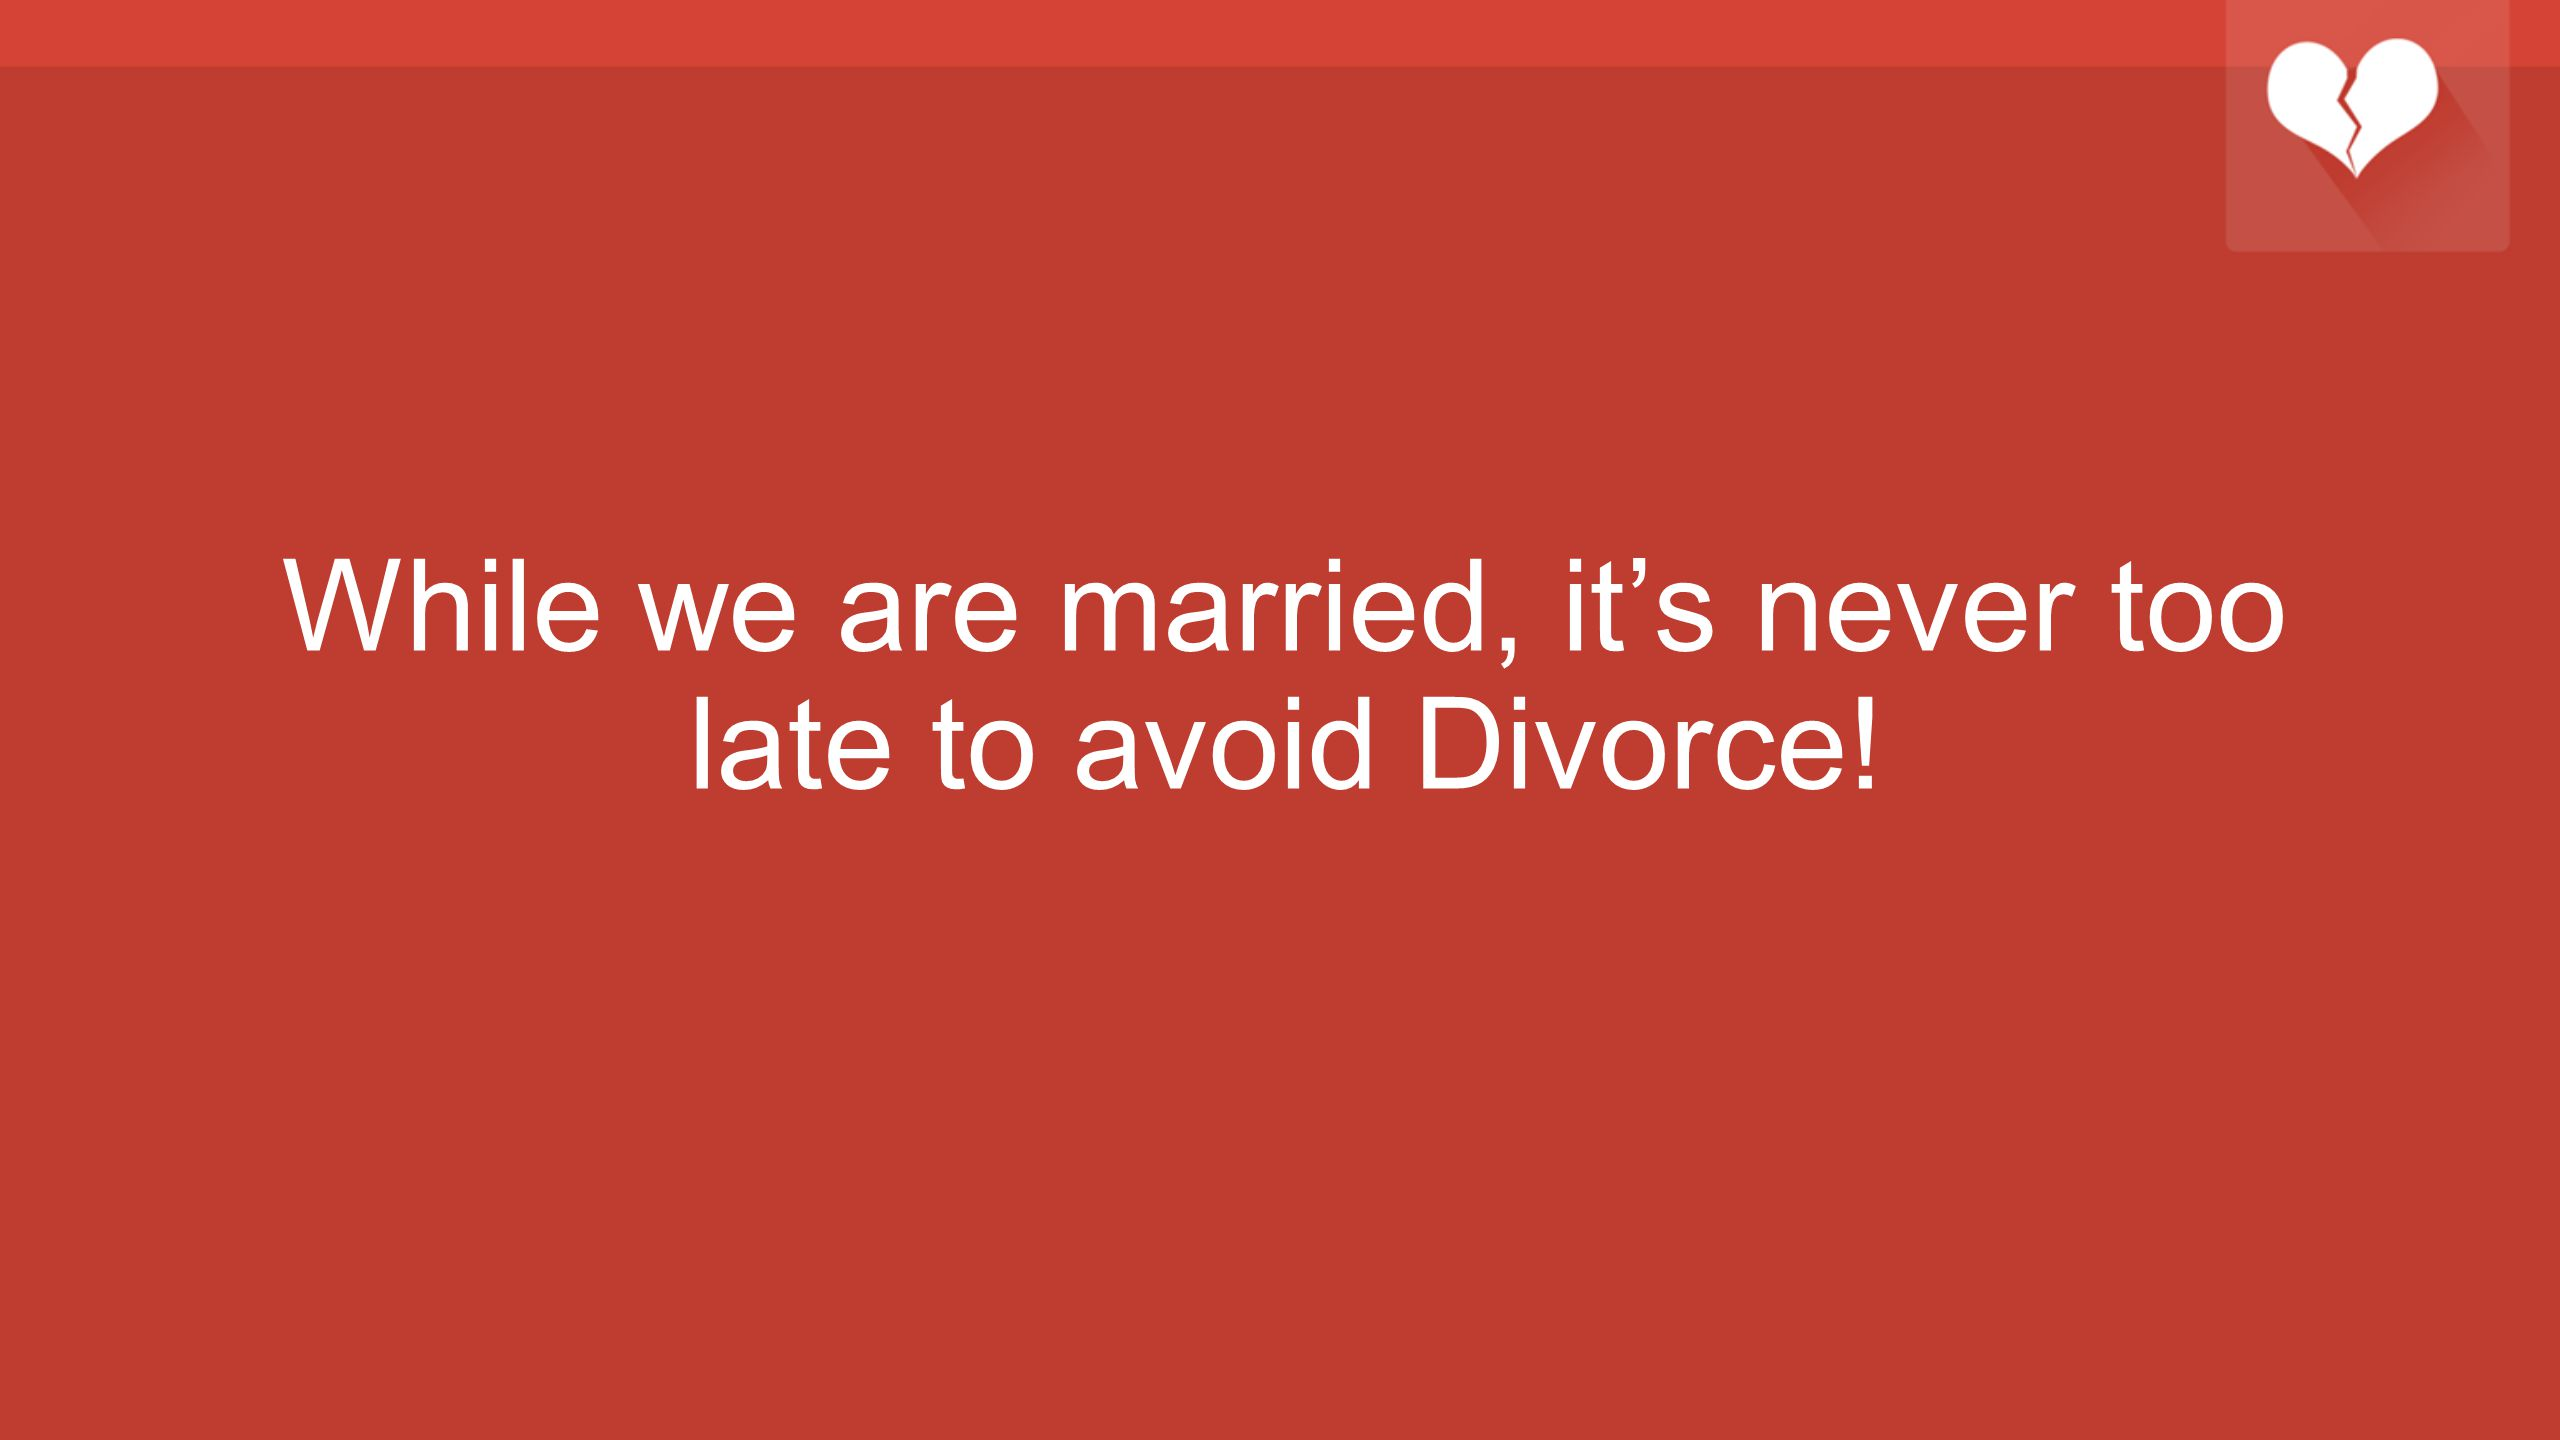 While we are married, it's never too late to avoid Divorce!